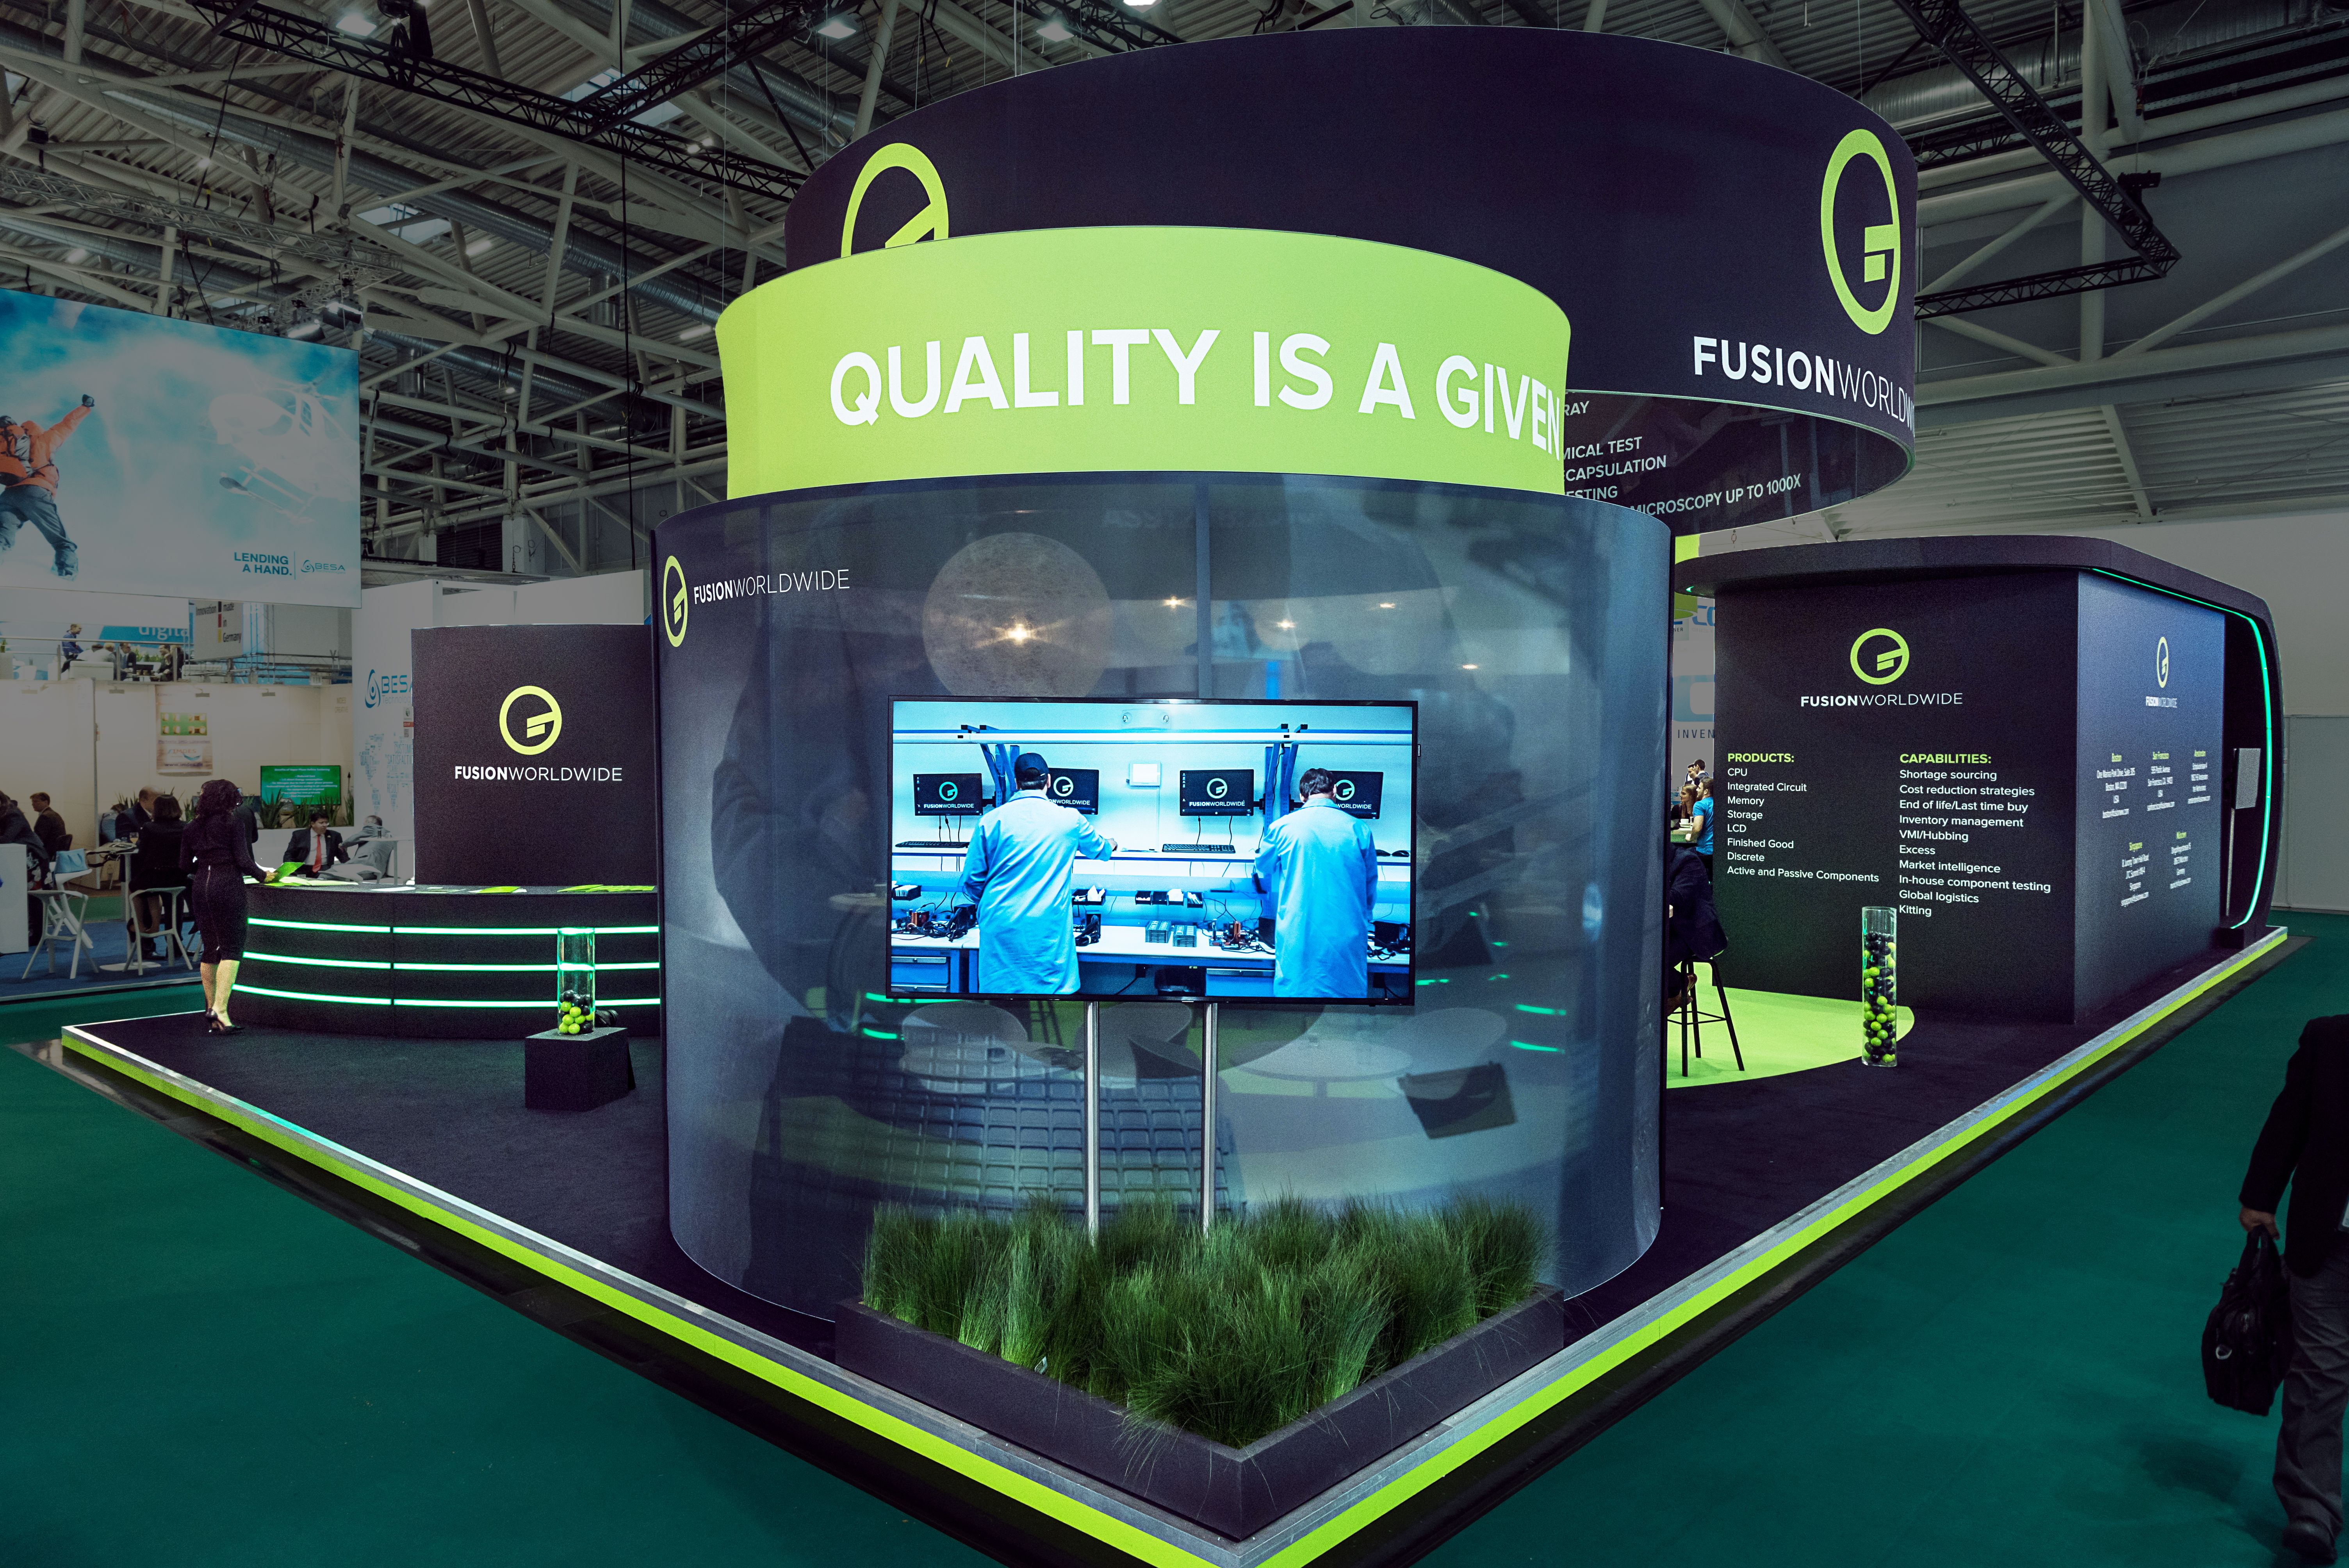 Exhibition Stand Builders In Munich : Creative design exhibition stand for fusion worldwide at